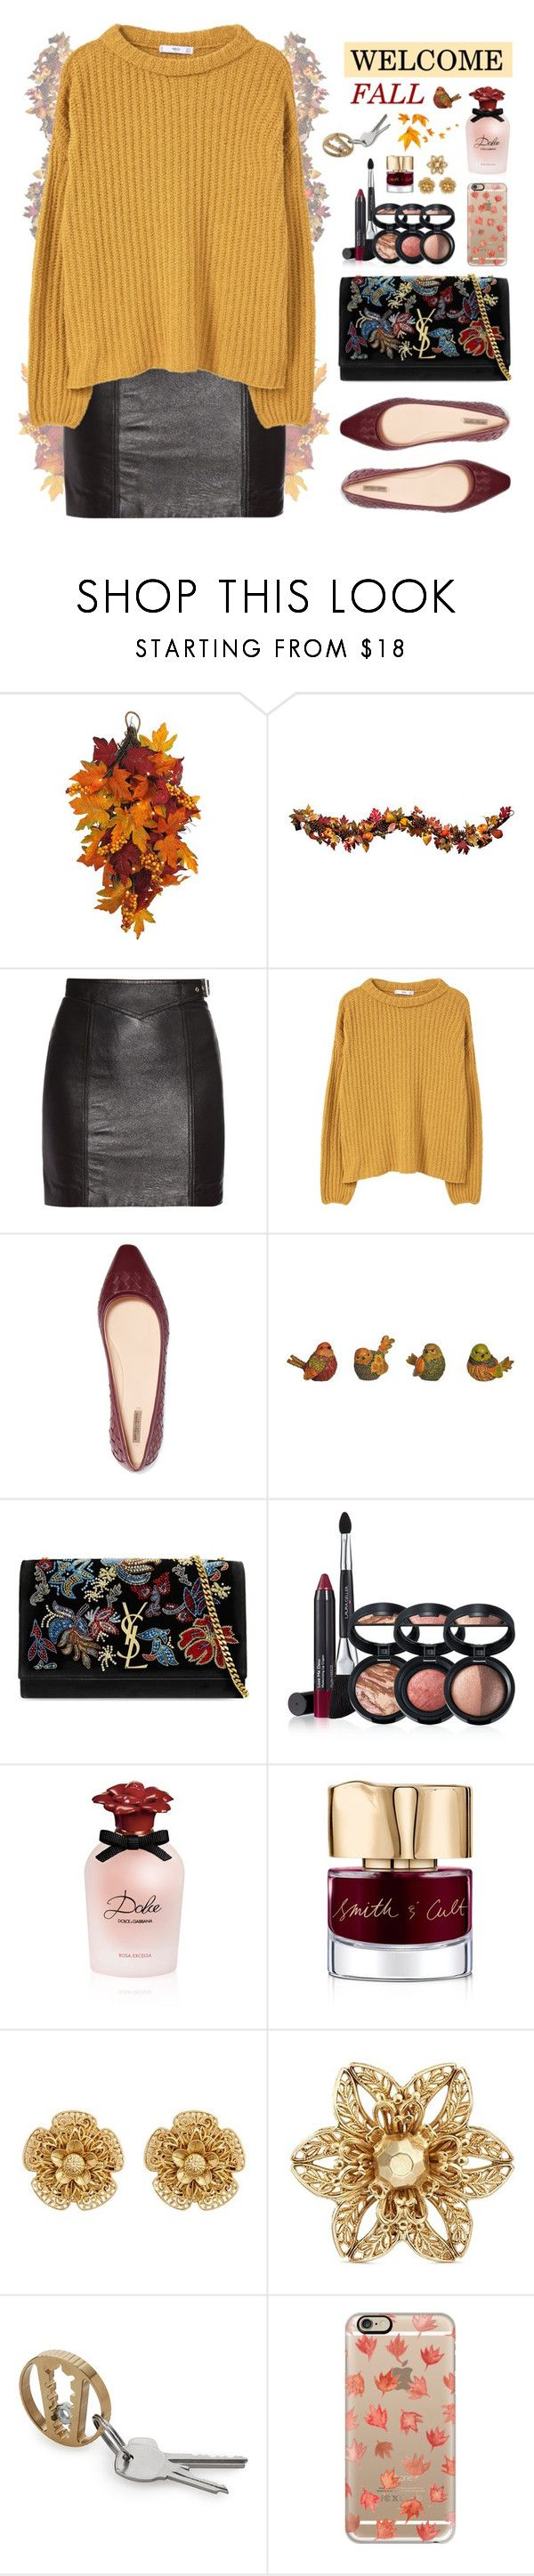 """""""🍃Welcome Fall🍂"""" by ealkhaldi ❤ liked on Polyvore featuring WALL, Improvements, Yves Saint Laurent, MANGO, Bottega Veneta, Laura Geller, Dolce&Gabbana, Smith & Cult, Miriam Haskell and Casetify"""